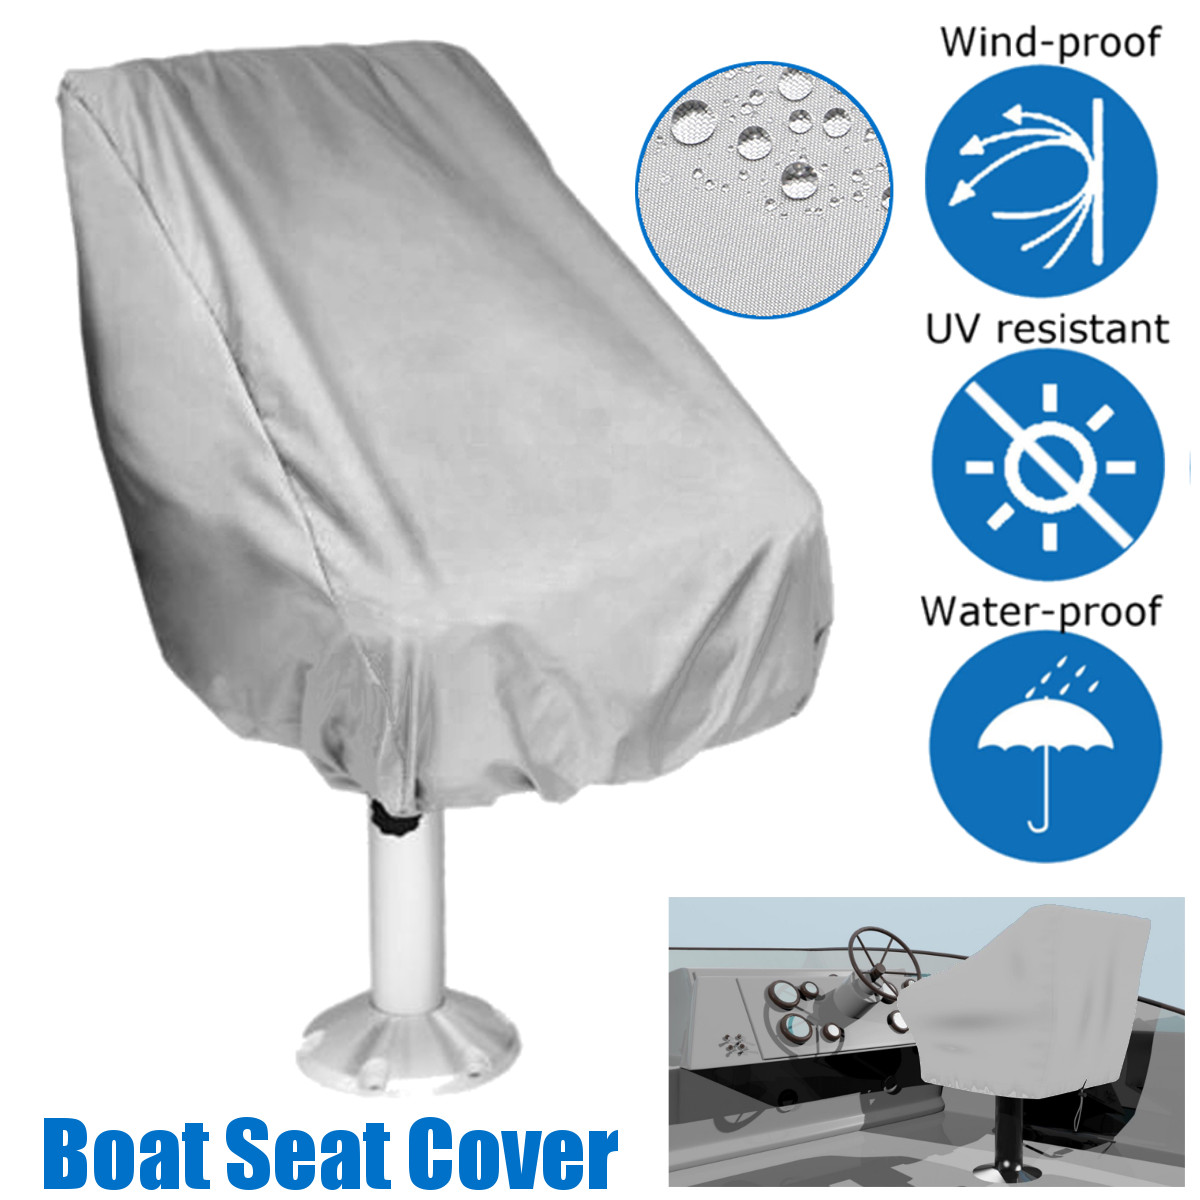 Initiative 56*61*64cm Boat Seat Cover Dust Waterproof Seat Cover Elastic Closure Outdoor Yacht Ship Lift Rotate Chair/table Furniture Cover Automobiles & Motorcycles Atv,rv,boat & Other Vehicle